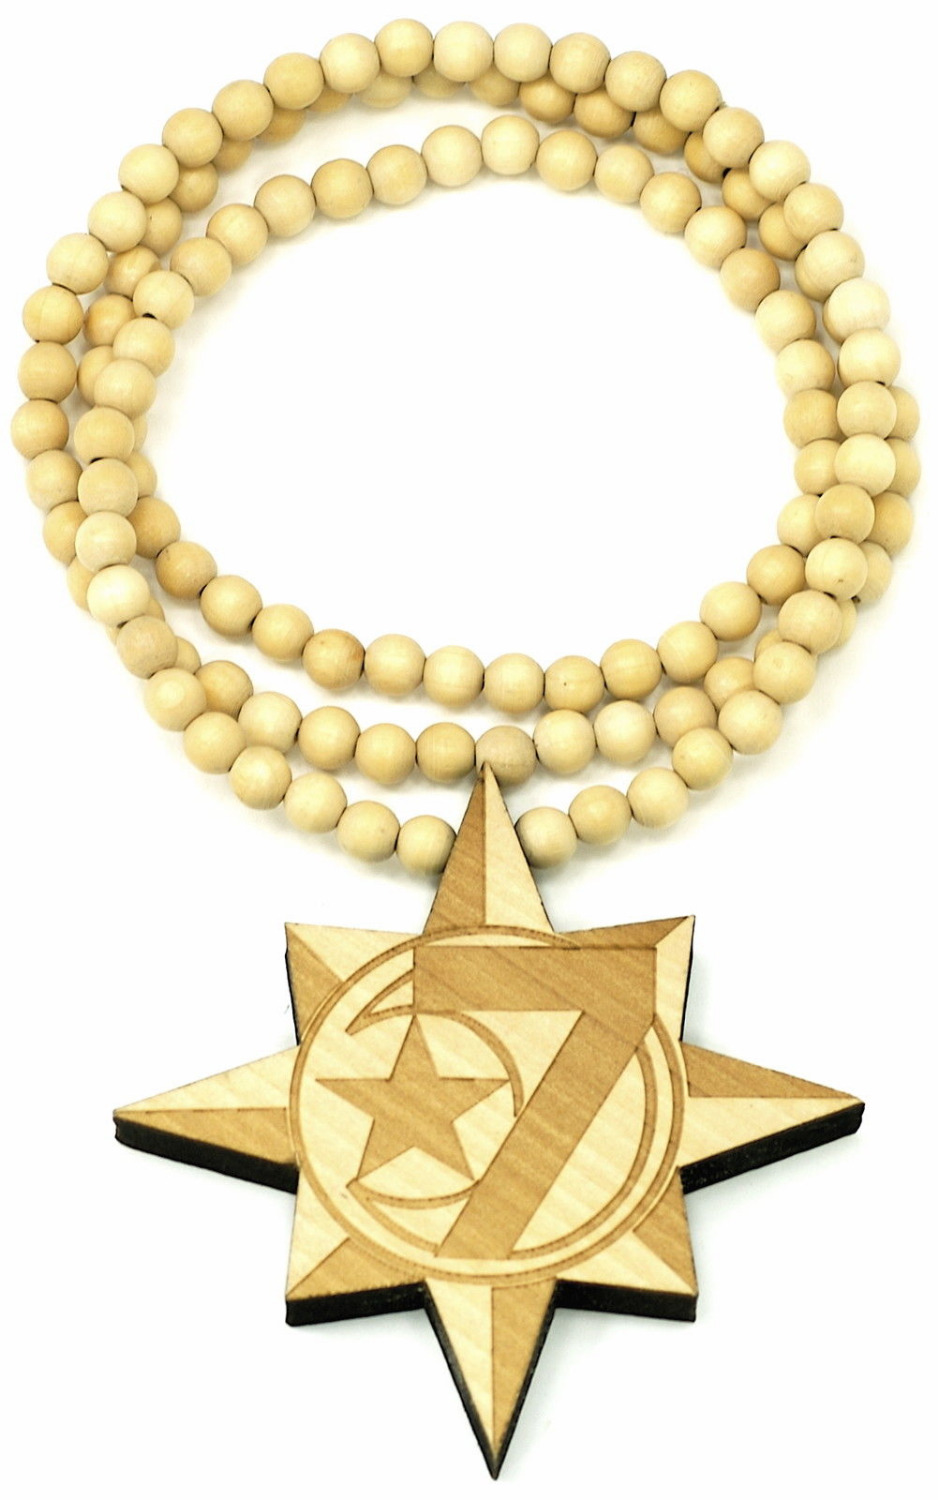 Allah 7 Moon & Star Pendant Good Wood NYC Hip-Hop Wooden Fashion Rosary Necklace(China (Mainland))